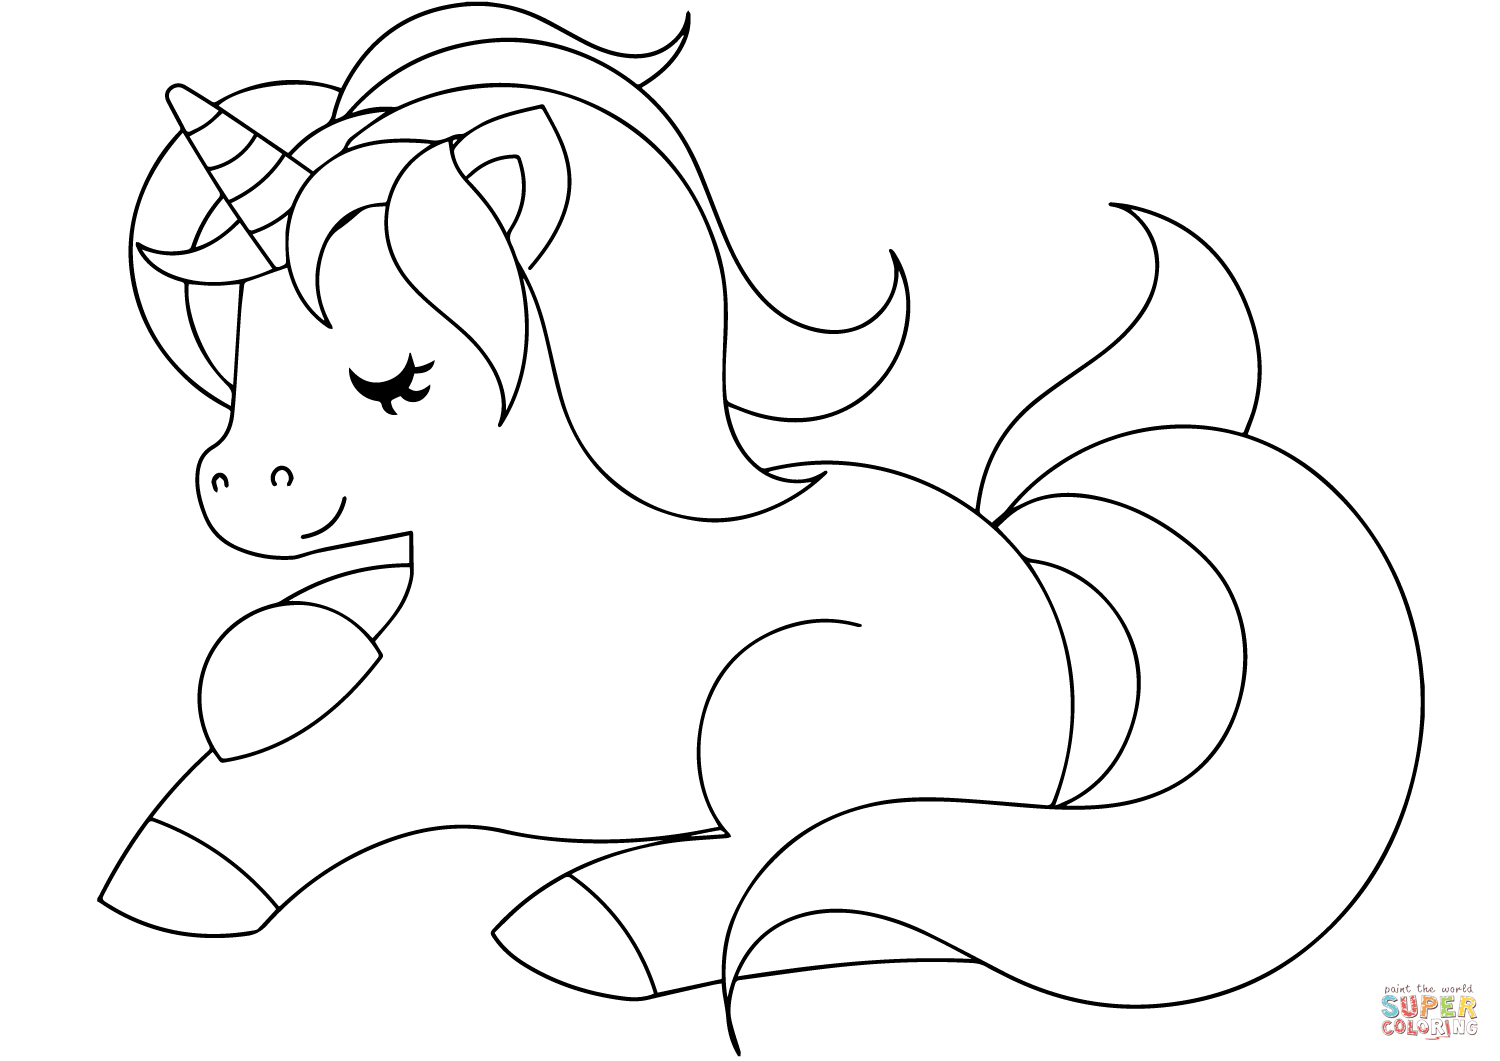 Cute Unicorn Coloring Pages Cute Unicorn Coloring Page Free Printable Coloring Pages